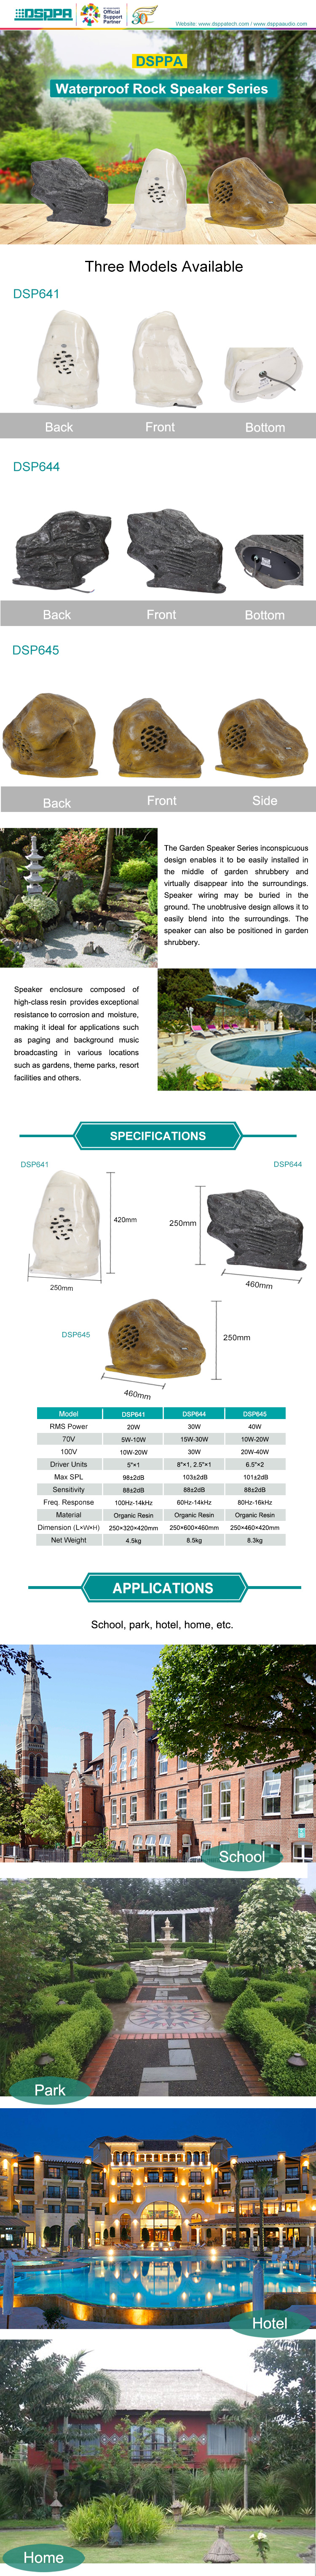 DSP645 Rock-shaped Outdoor Waterproof Garden Speaker